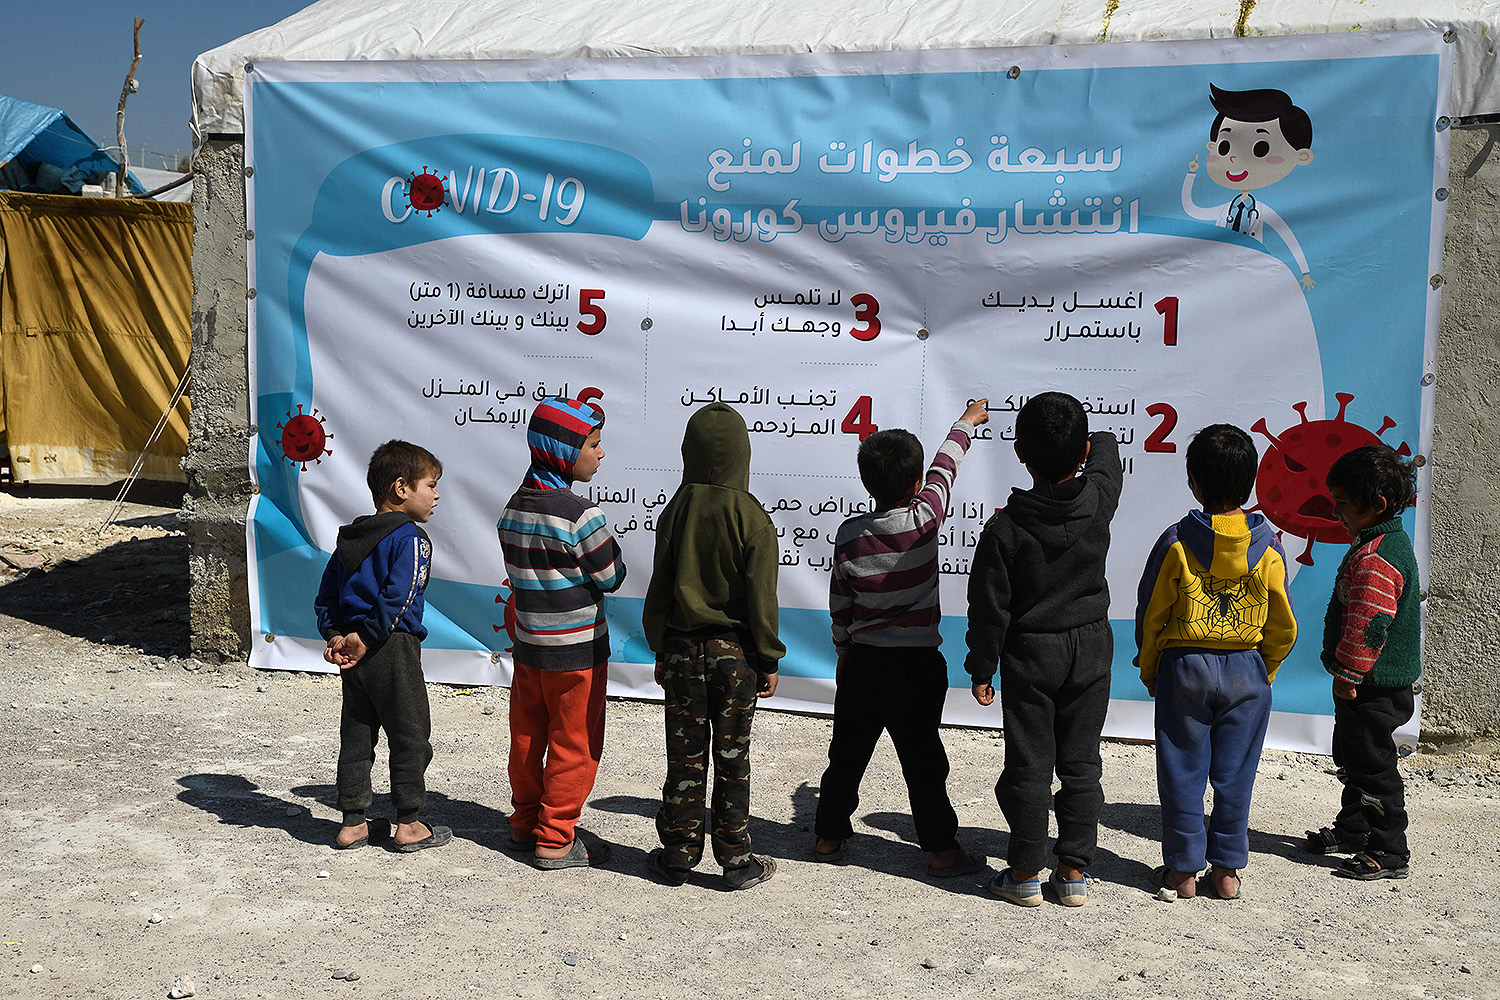 Displaced Syrian children read a poster outlining the seven steps to prevent the spread of coronavirus at a camp for the internally displaced near the Turkish border in the rebel-held part of Aleppo on March 22. RAMI AL SAYED/AFP via Getty Images